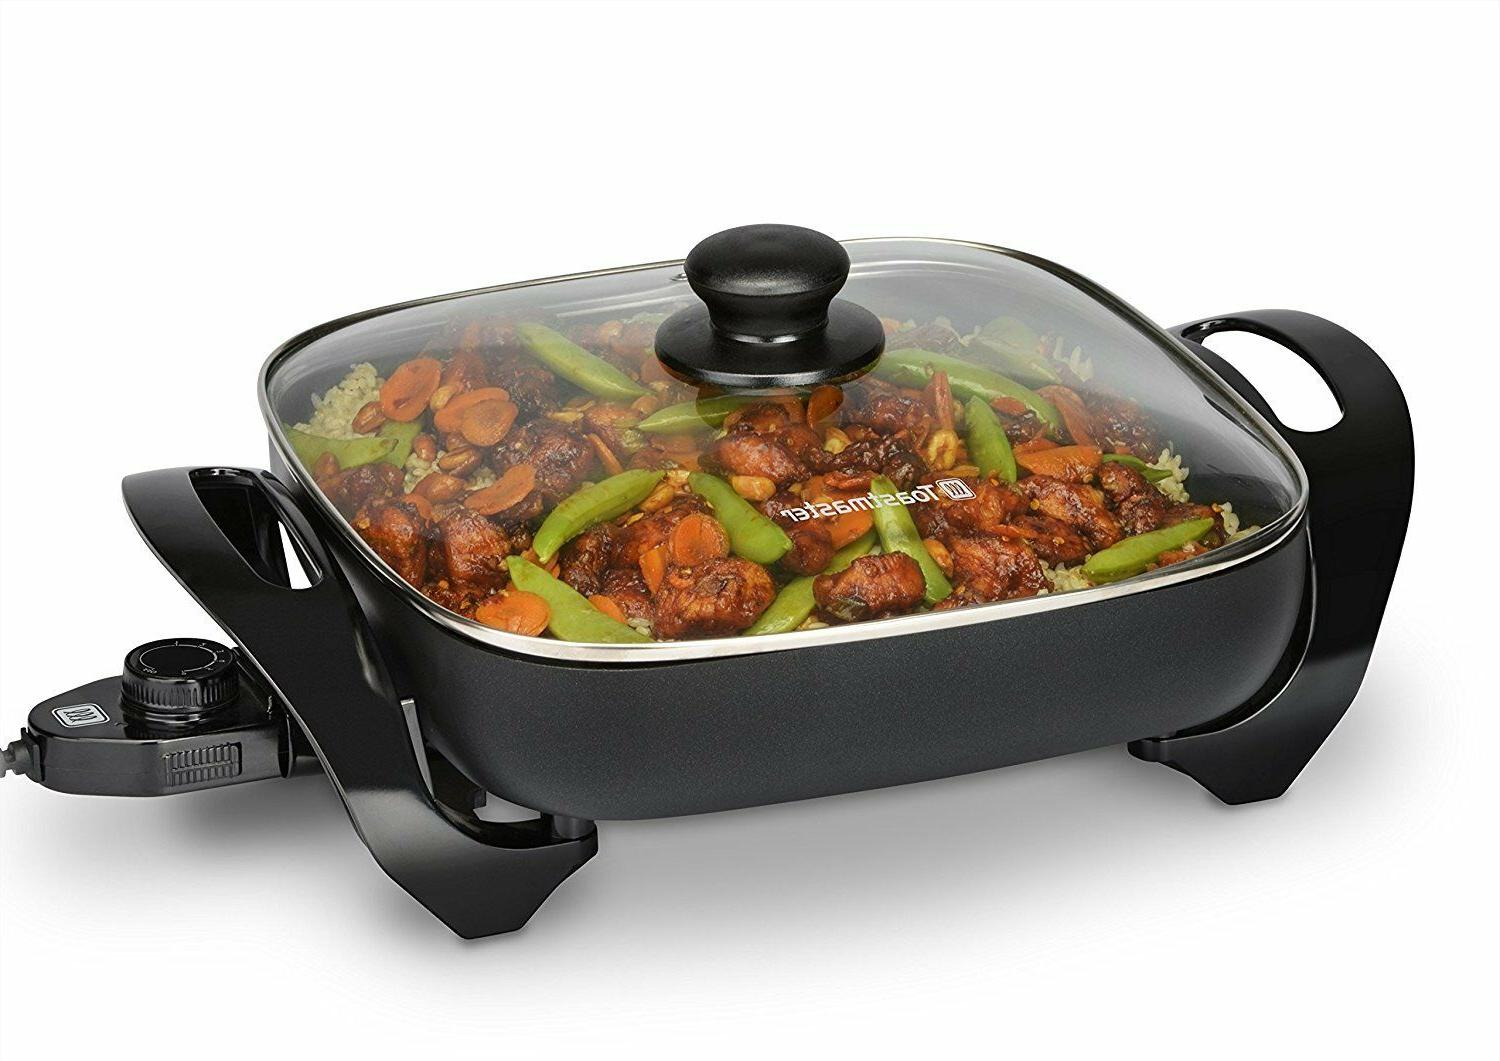 11 electric skillet nonstick frying pan tempered